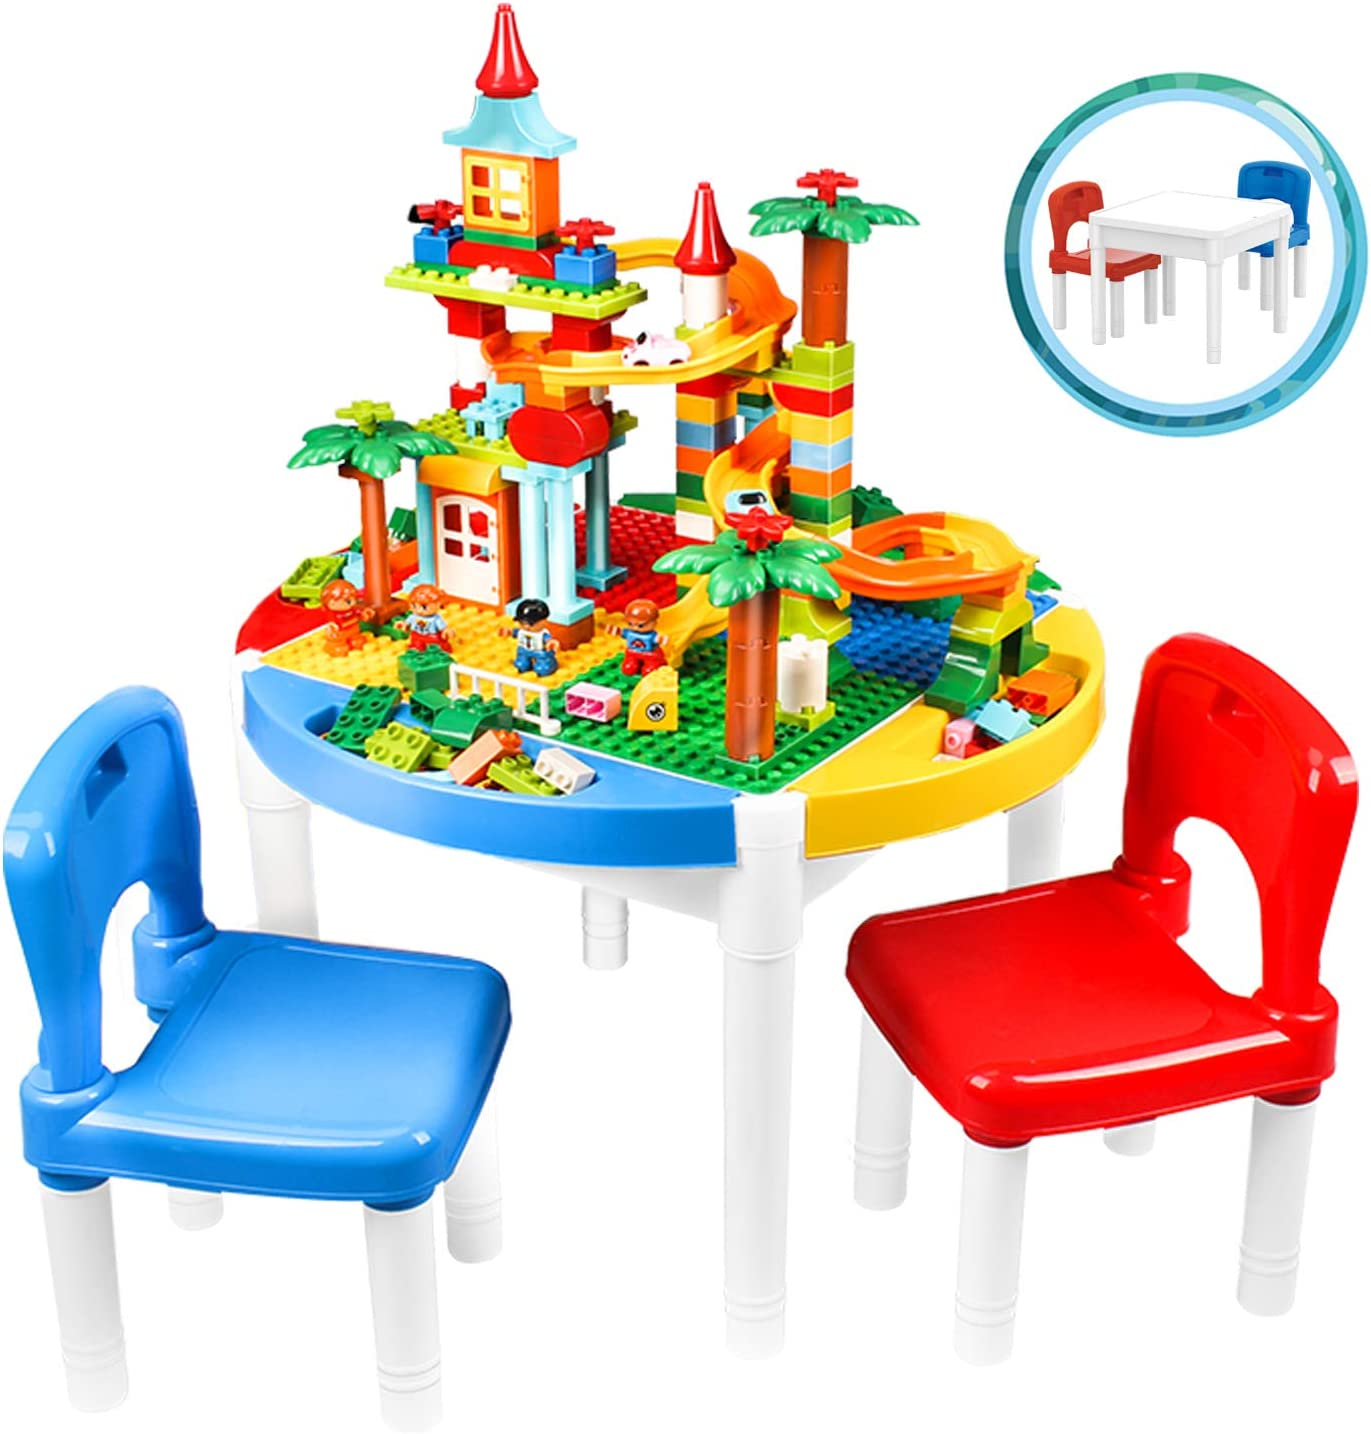 Little Brown Box 6 in 1 Kids Multi Activity Table and Chairs Set W/Storage. Sand, Water, Blocks Table, Play & Study Desk - for Toddler Baby Childern - 200pc Building Bricks Compatible w/Major Brands